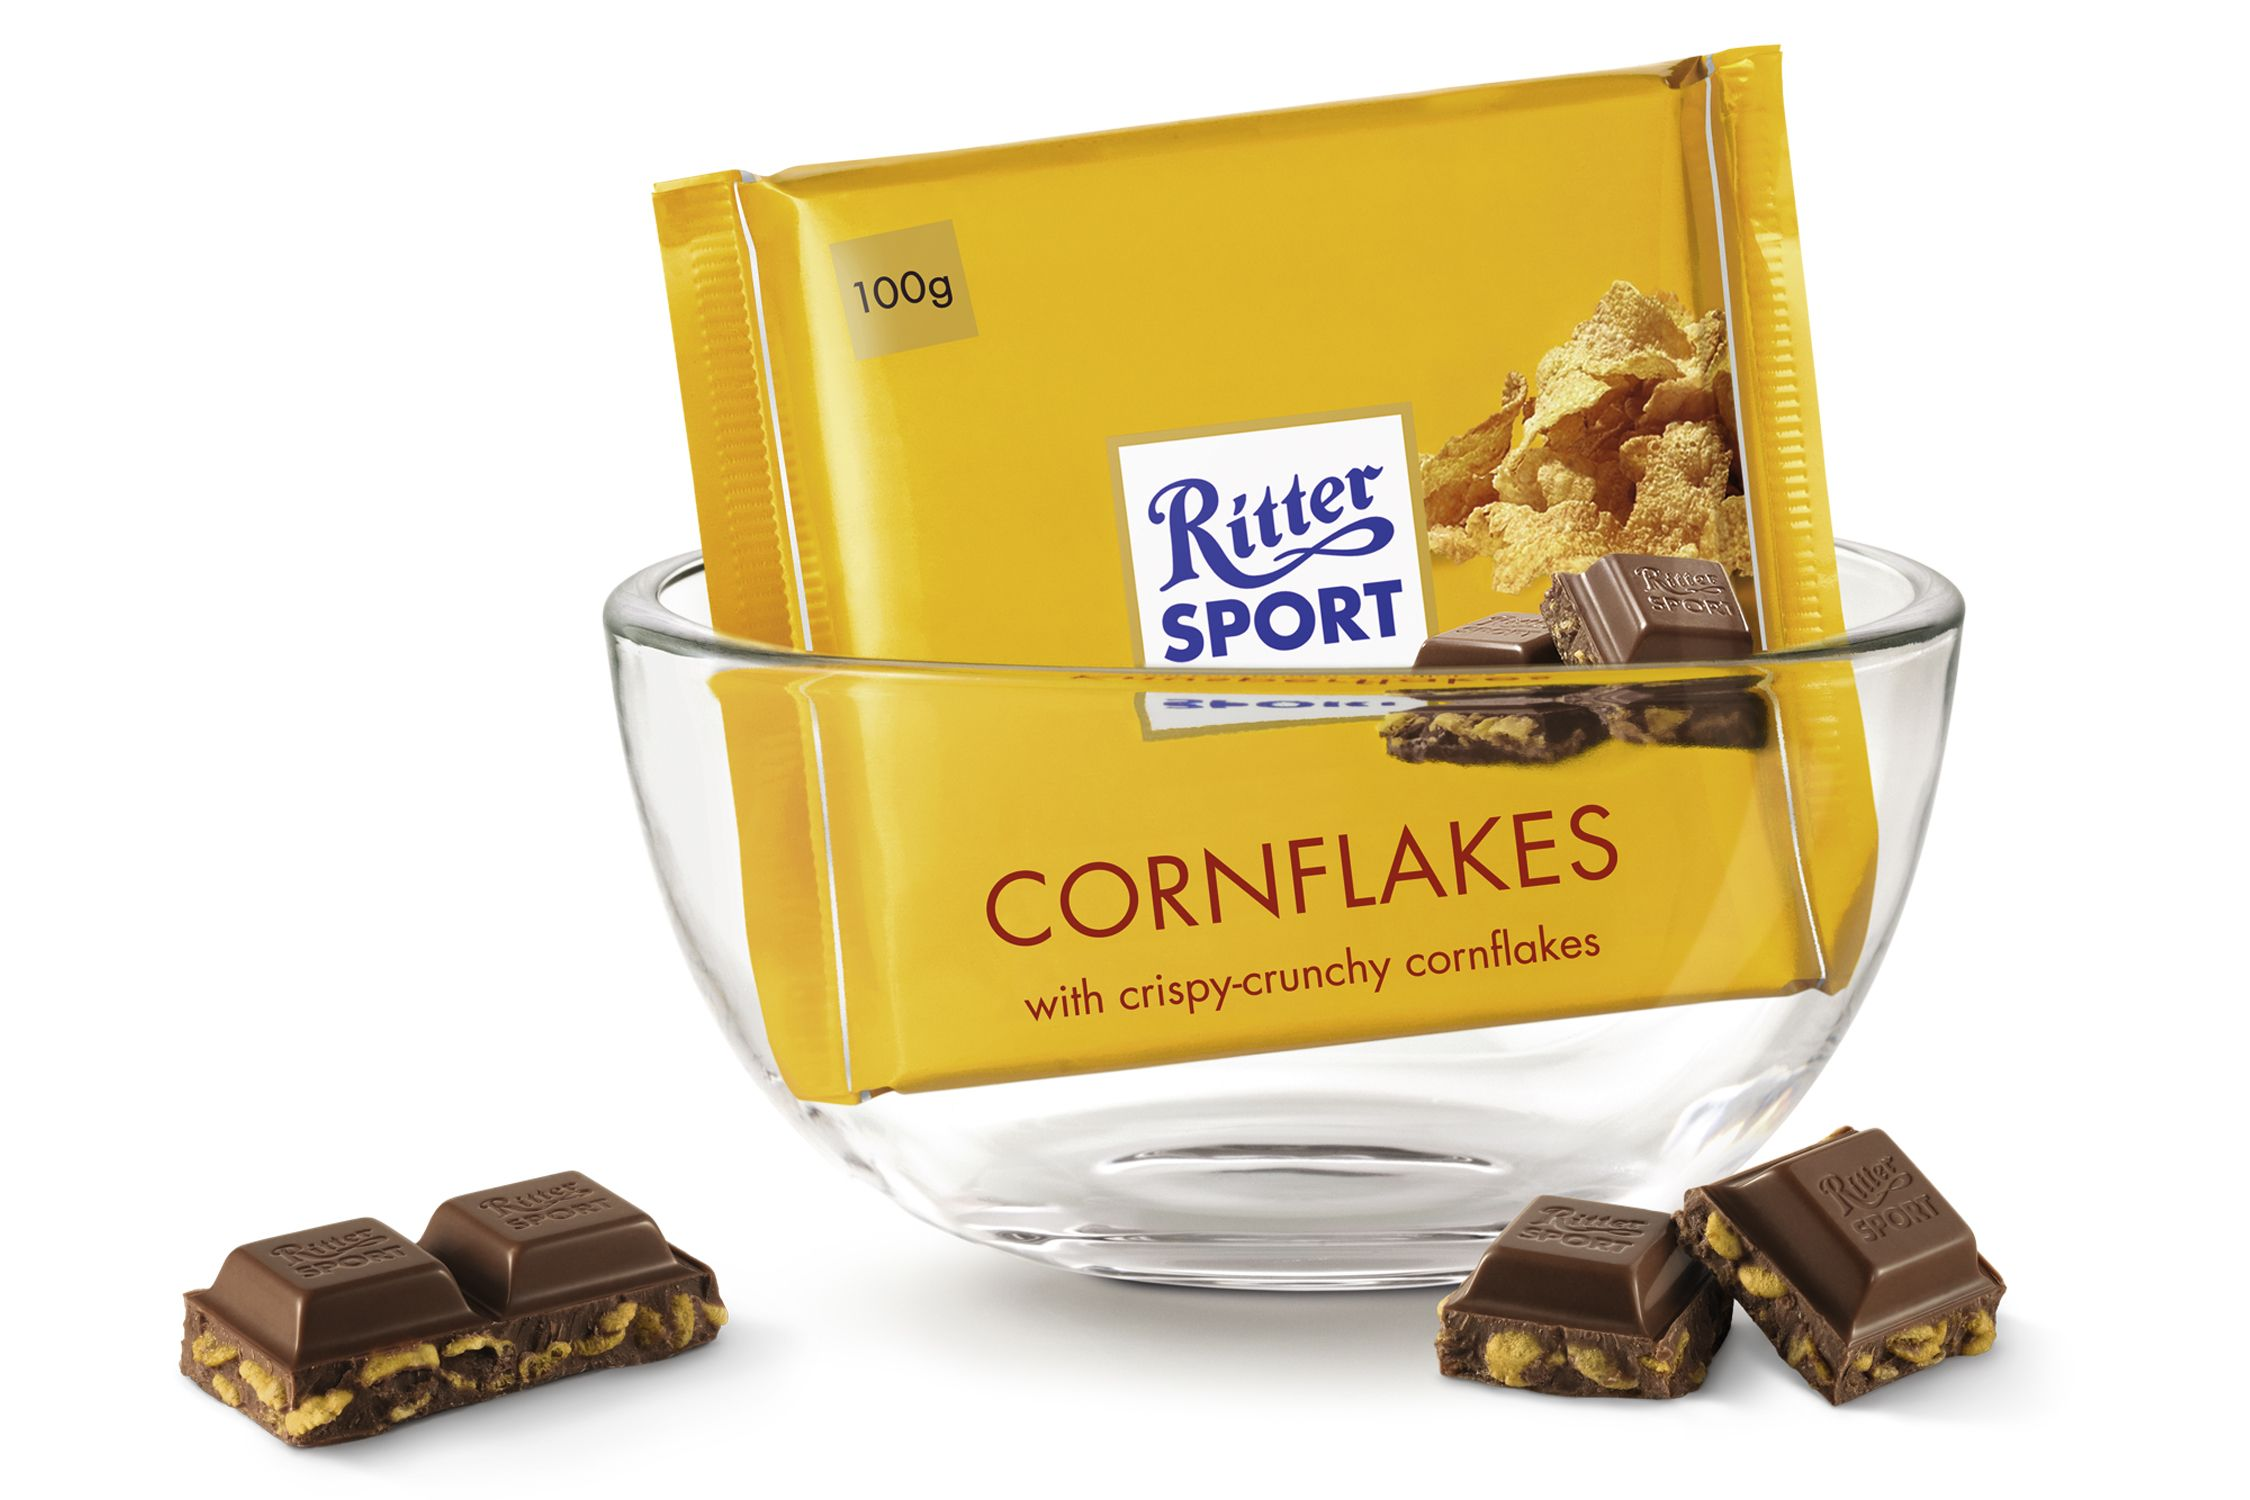 The new RITTER SPORT site Cornflakes, Creamy chocolate